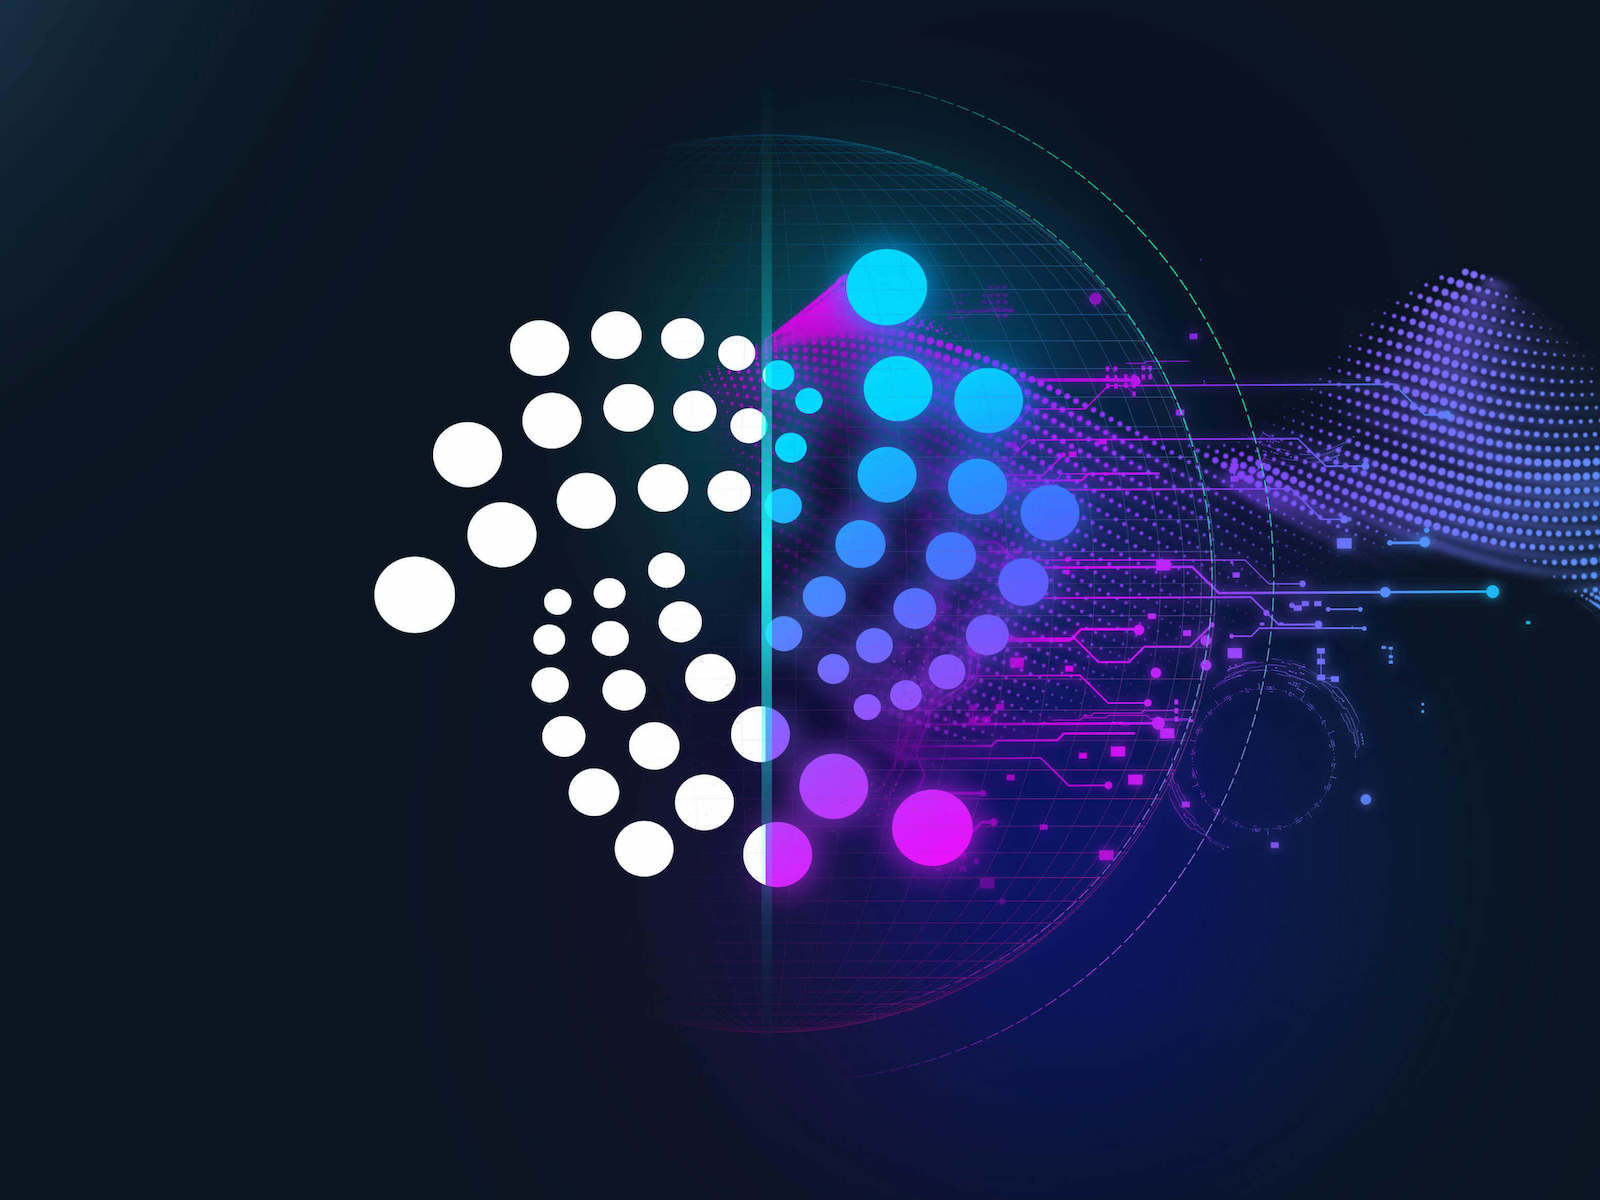 IOTA analysis and forecast (Tue, Sep 11th, 2018): Corrective movement to Fibonacci 38.2%